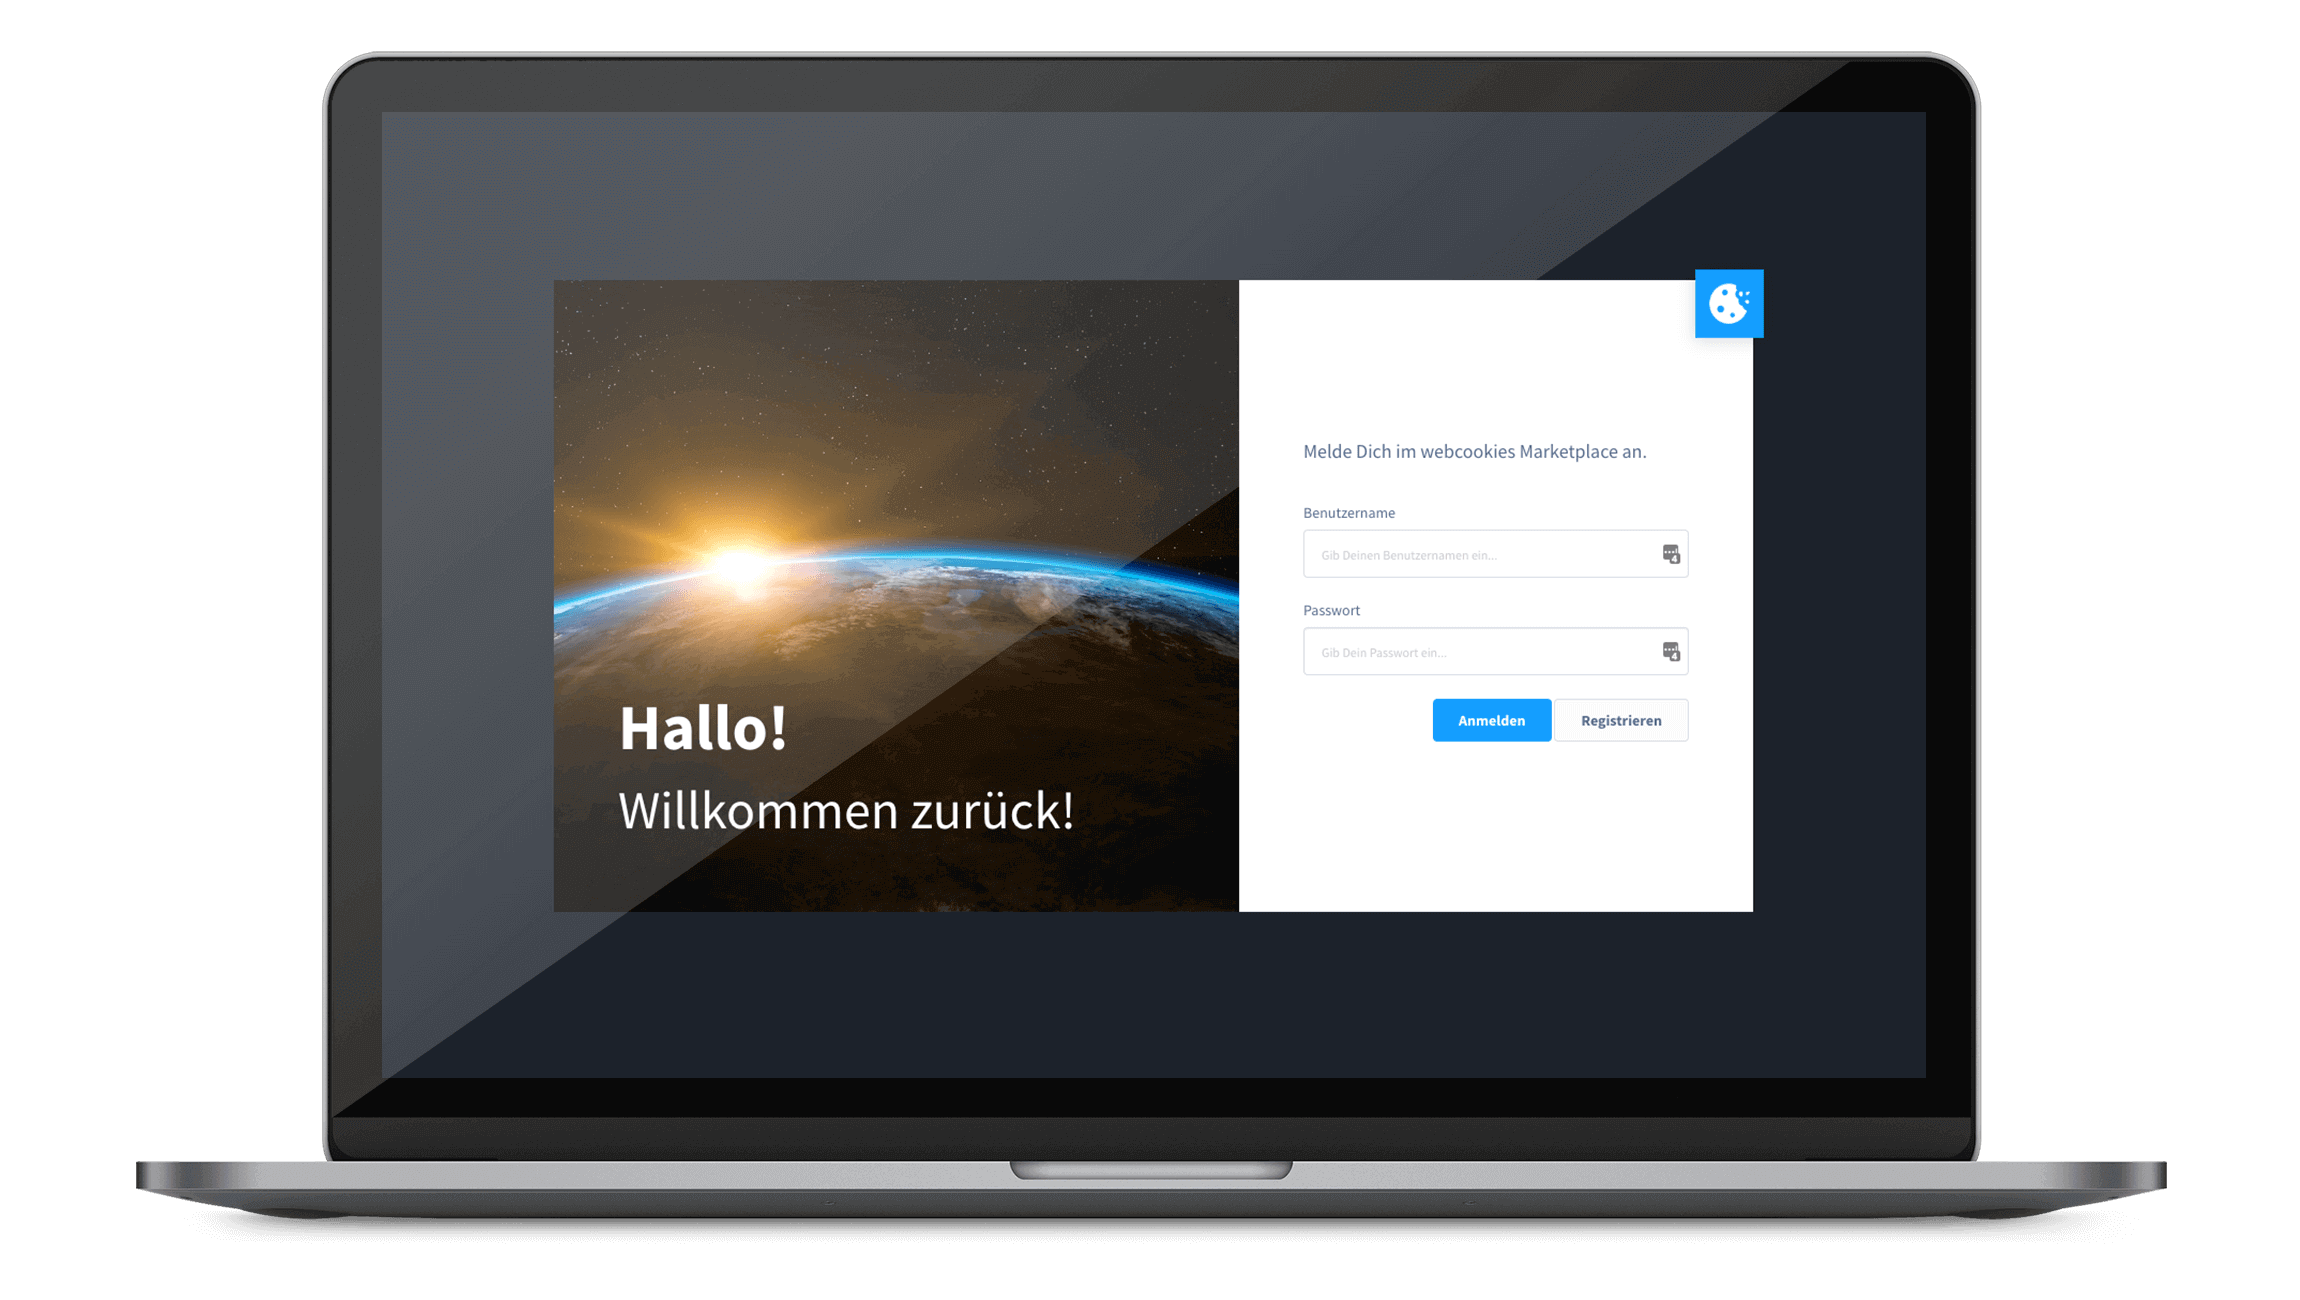 webcookies-shopware-marktplatz-backend